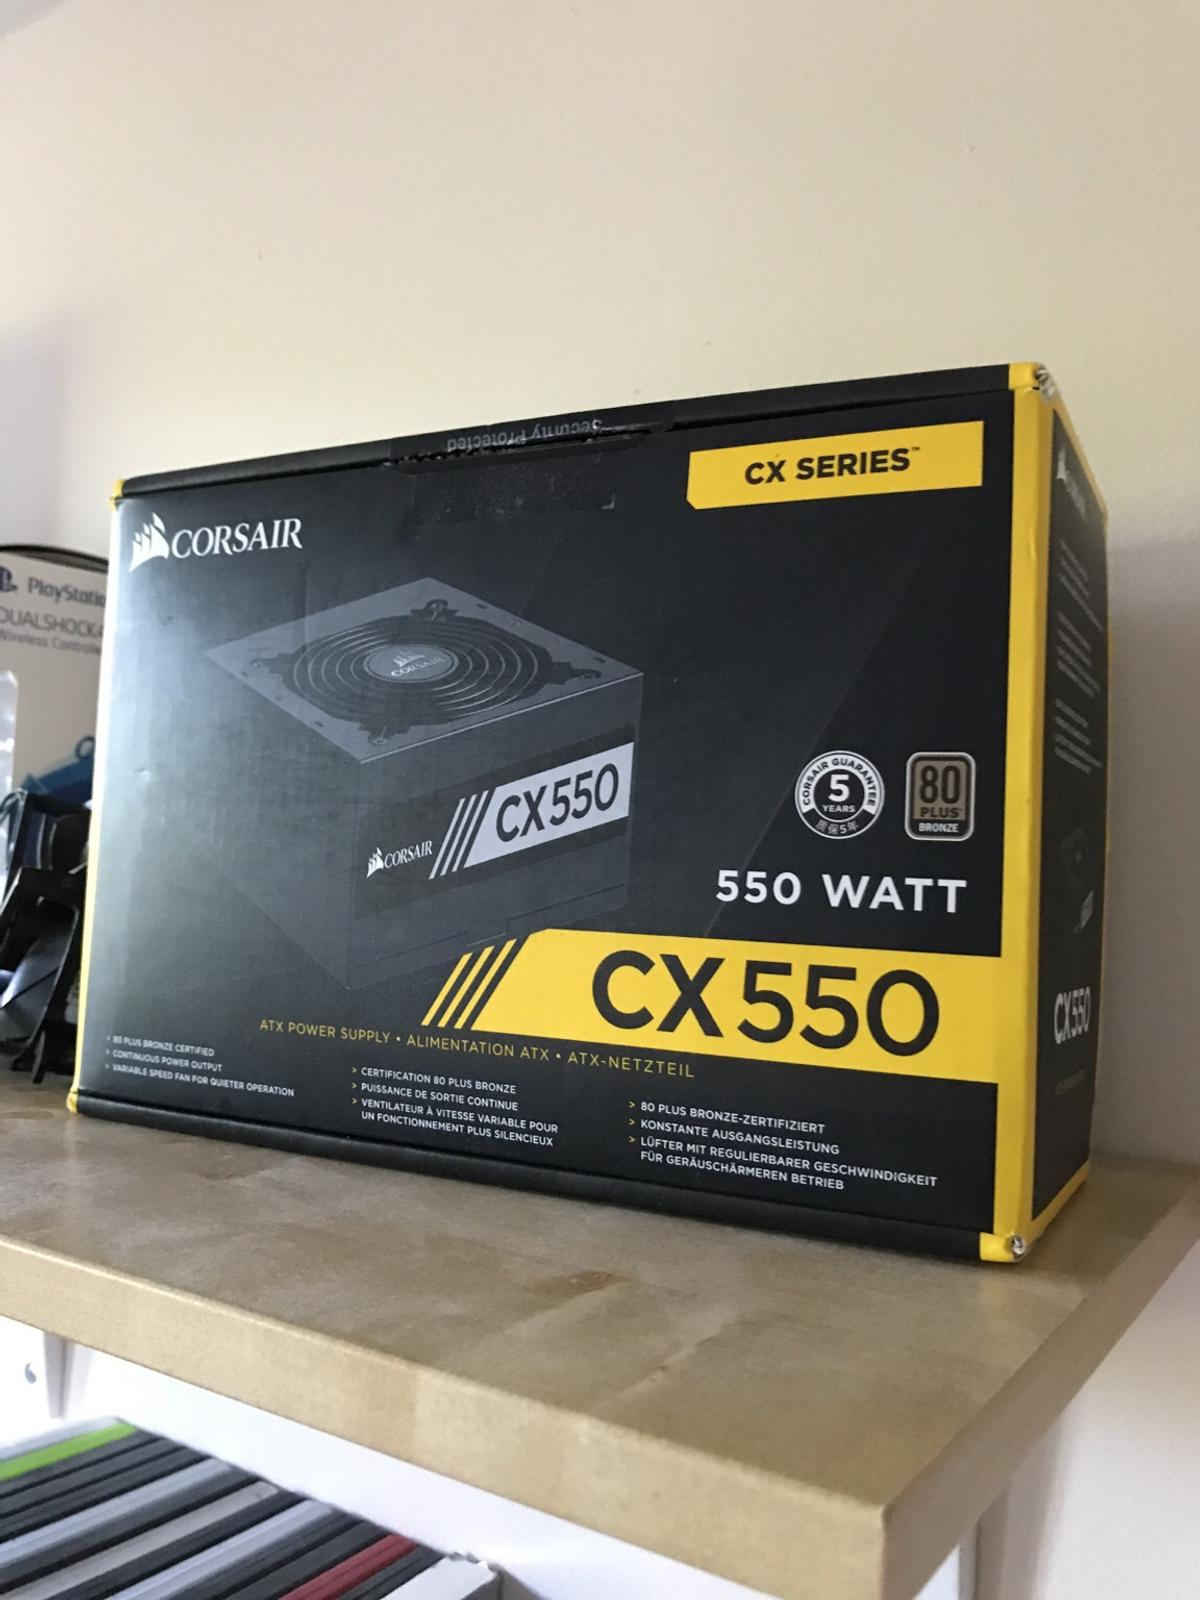 Corsair Cx 550 bronze certf  PSU